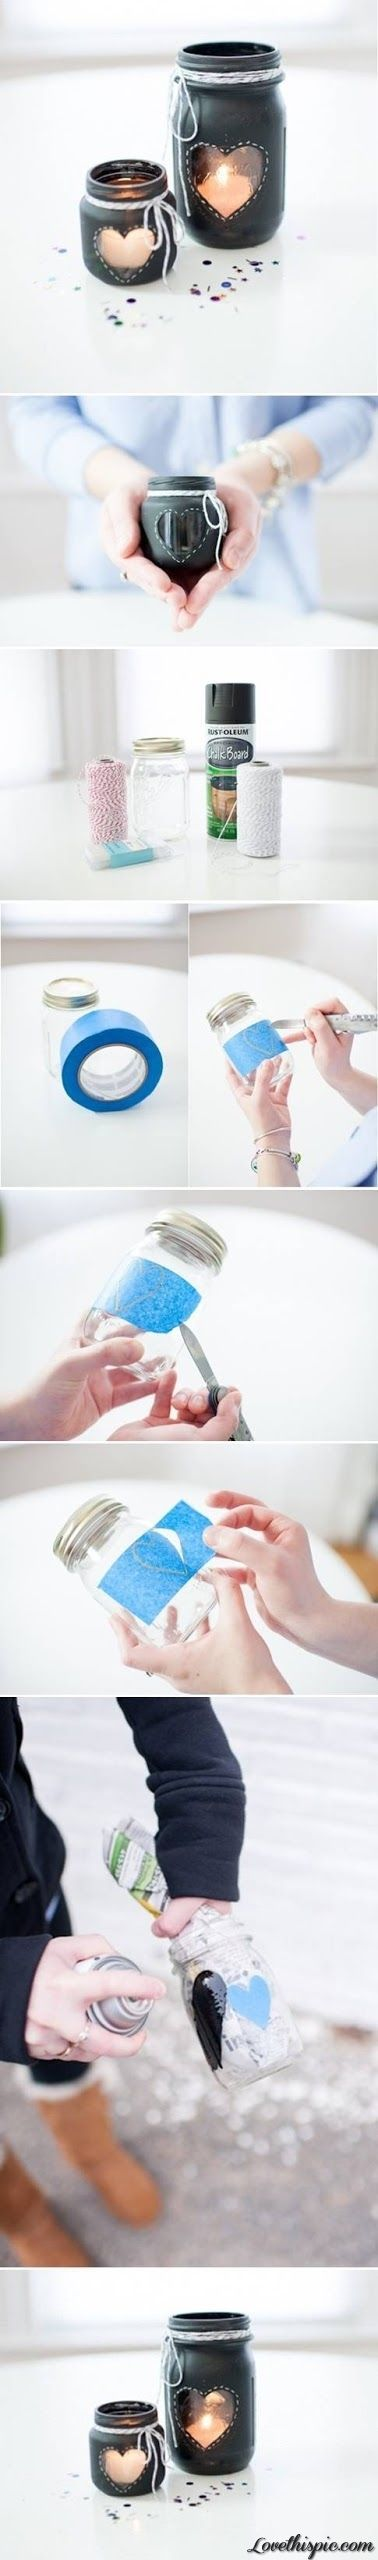 DIY Glass Jar Candle - with chalkboard paint Do trefoil